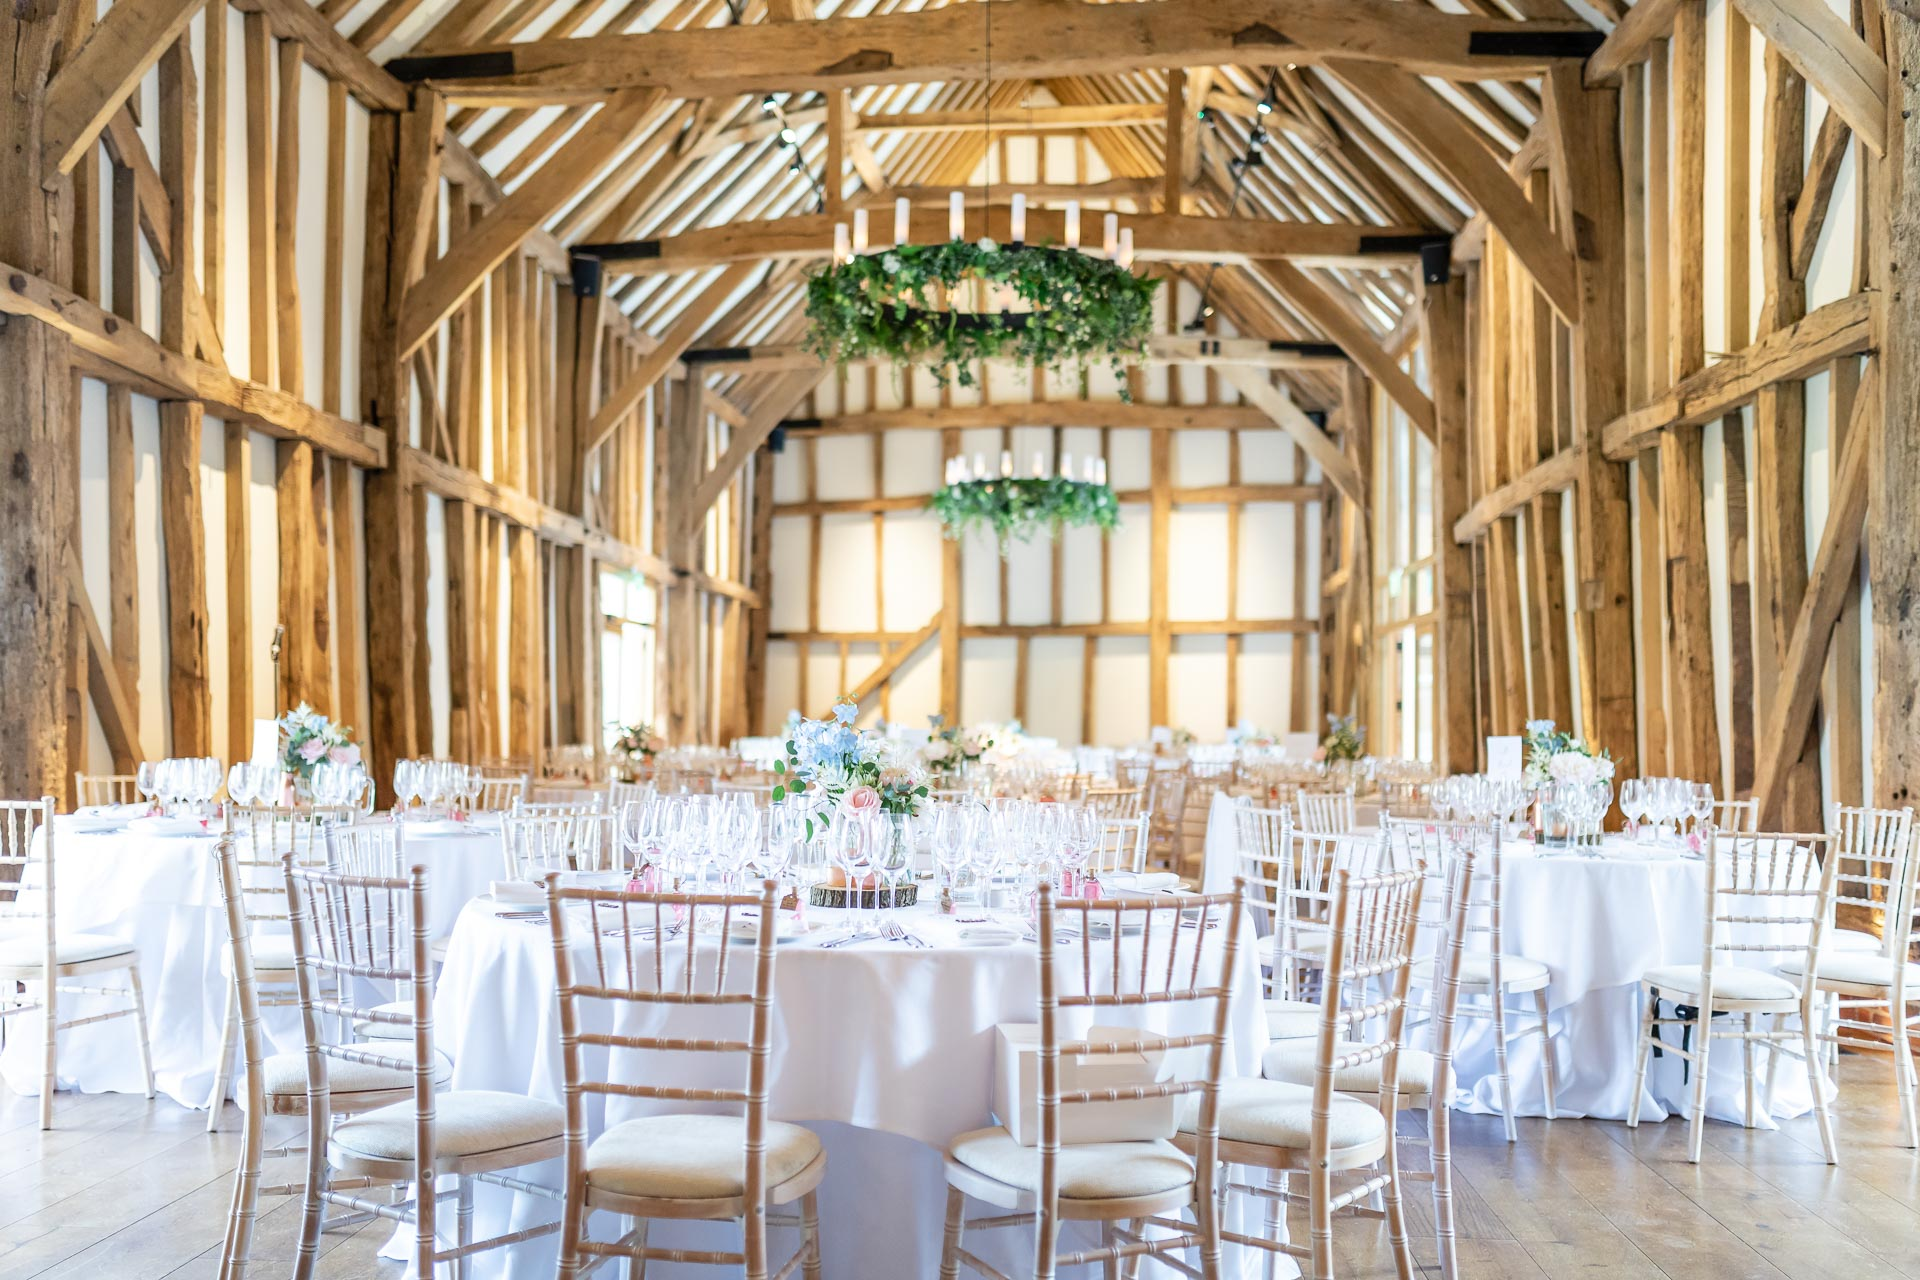 An image of a barn reception venue - wedding day photography by Sam of Hansford Carter, a Kent-based wedding photographer